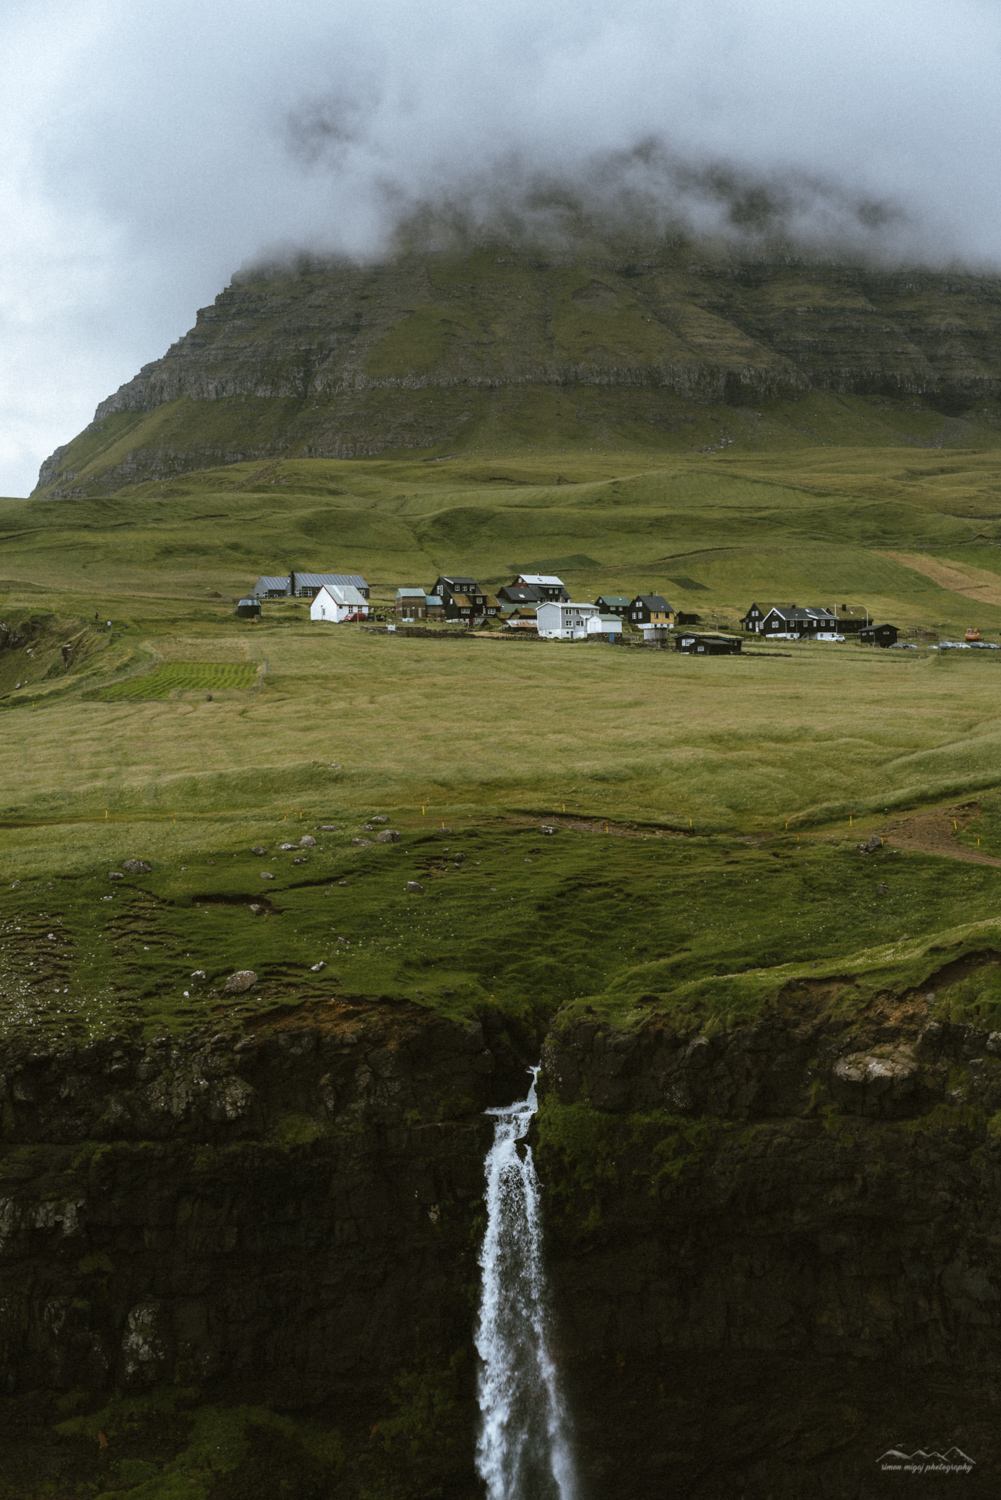 View of the Múlafossur waterfall and Gasadalur village in the background